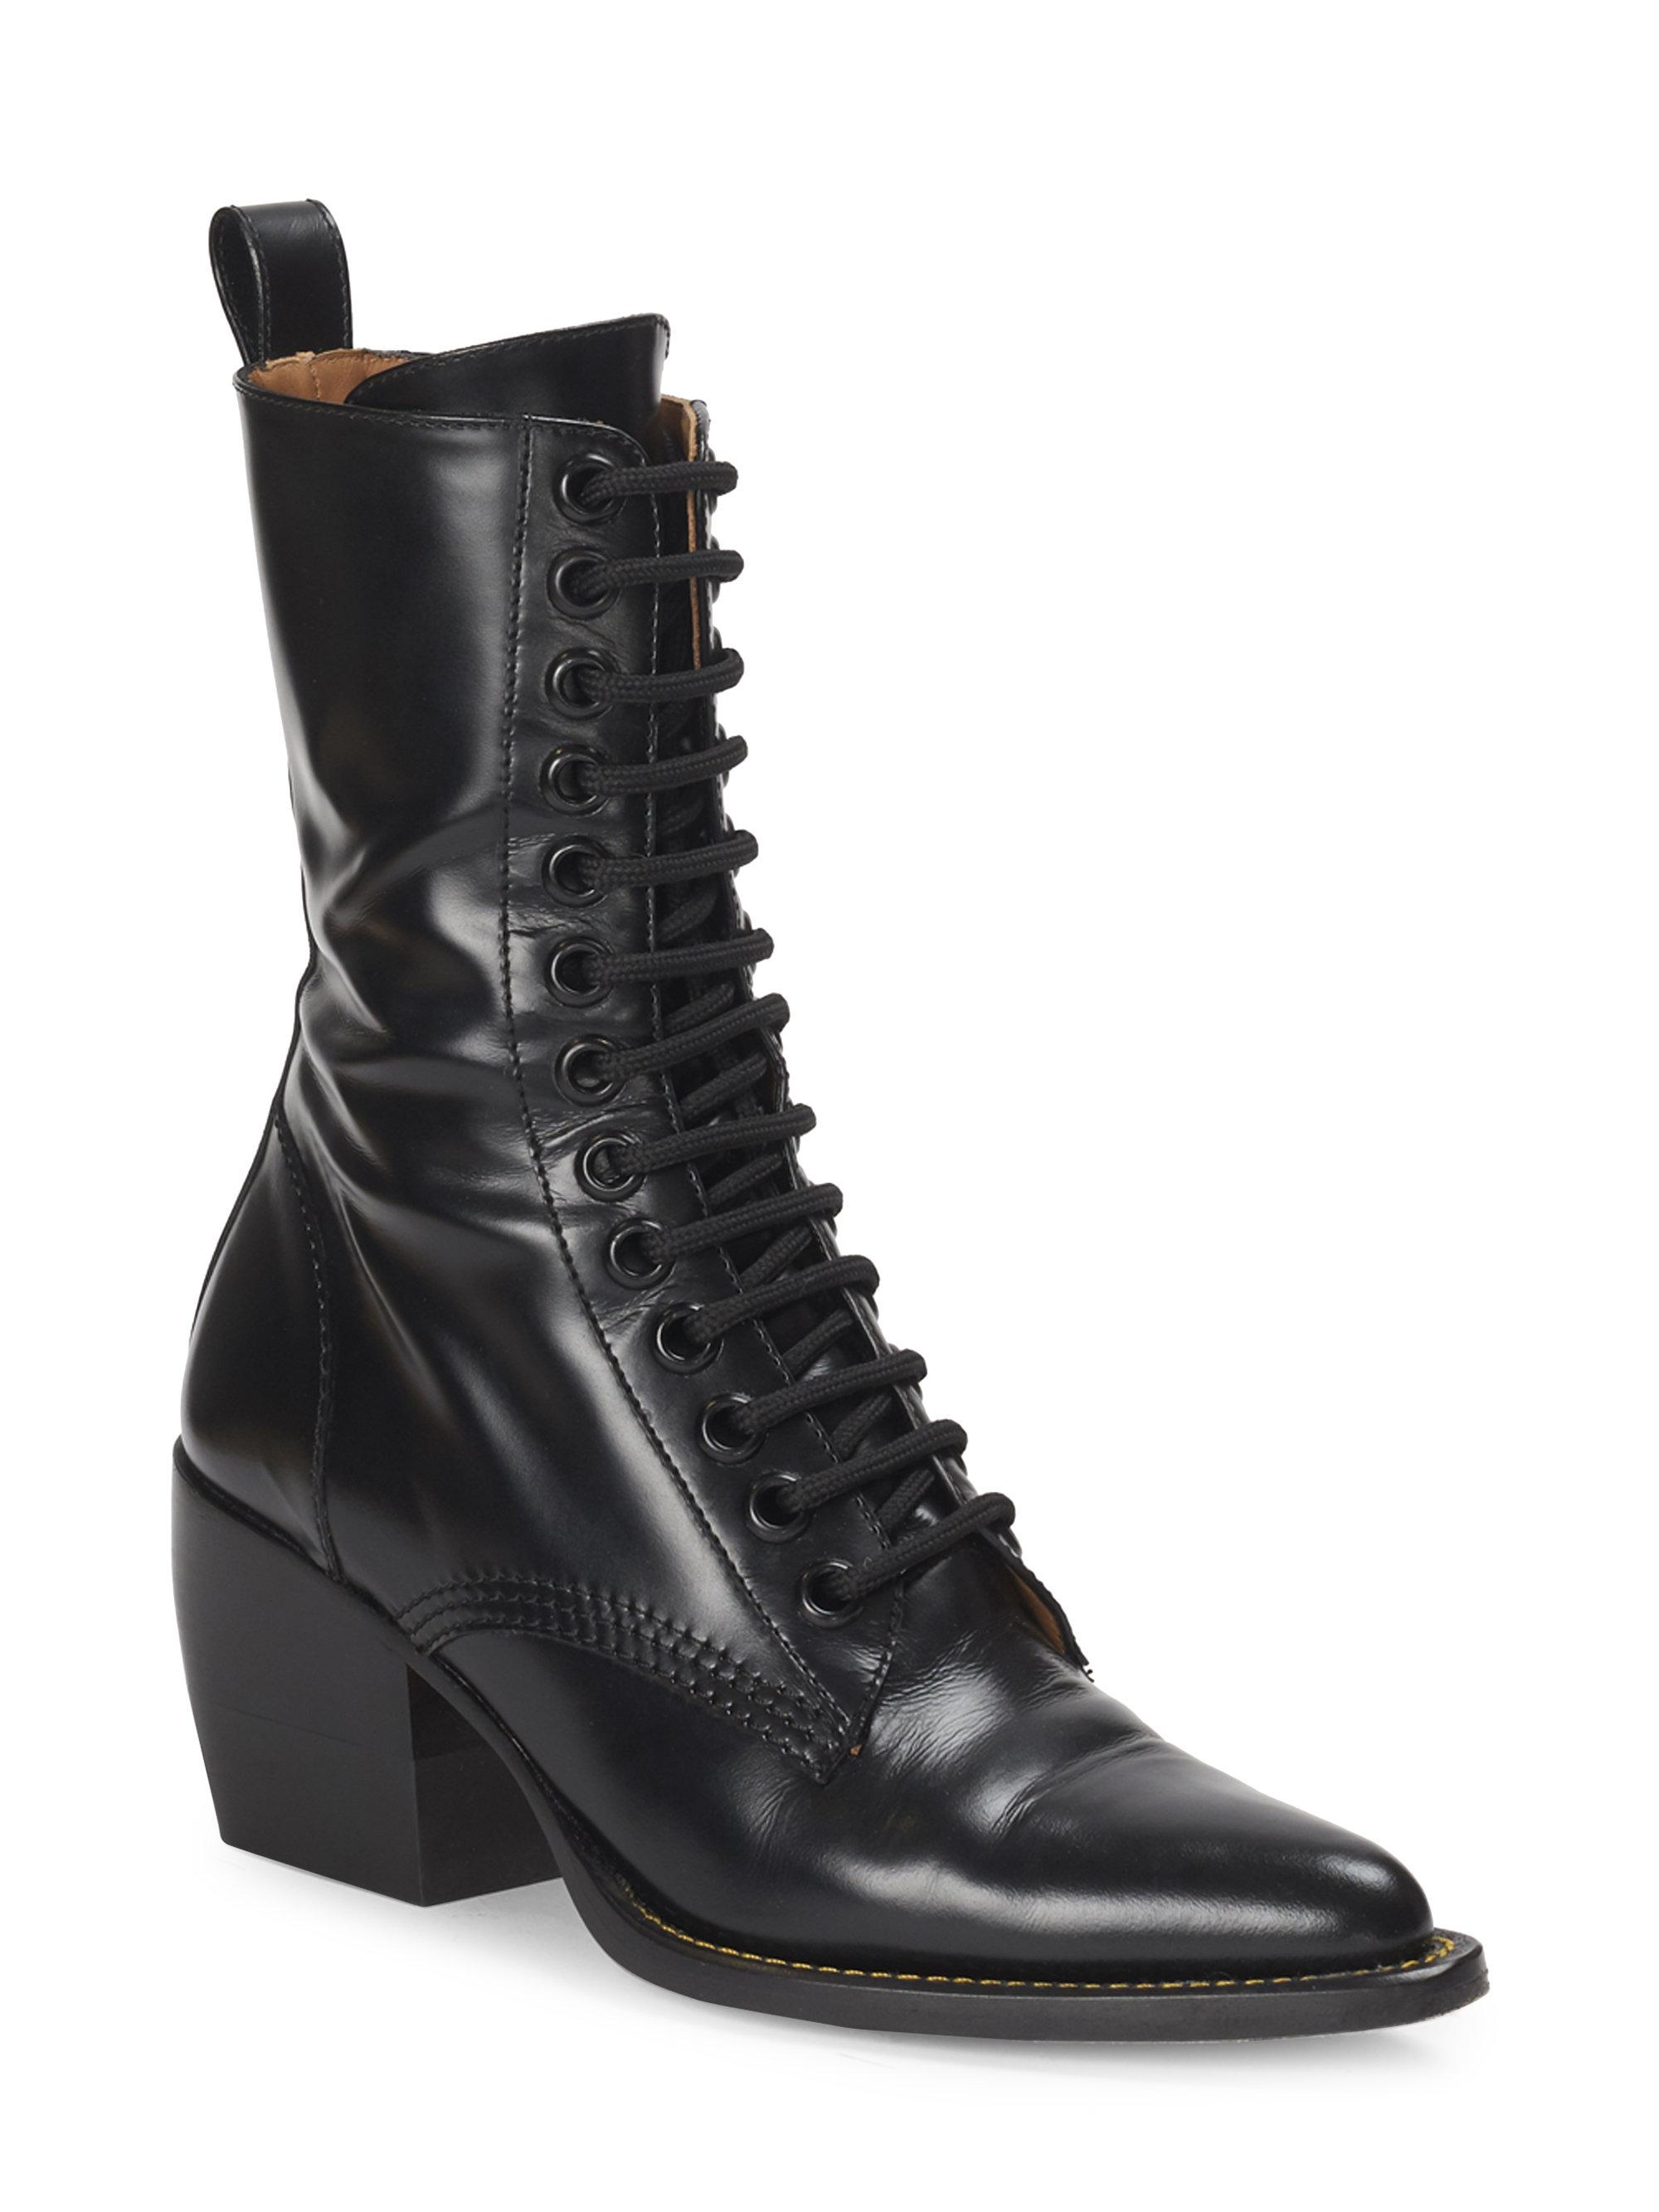 3f82668bd6 Chloé Rylee Lace-up Leather Mid-calf Boots in Black - Lyst